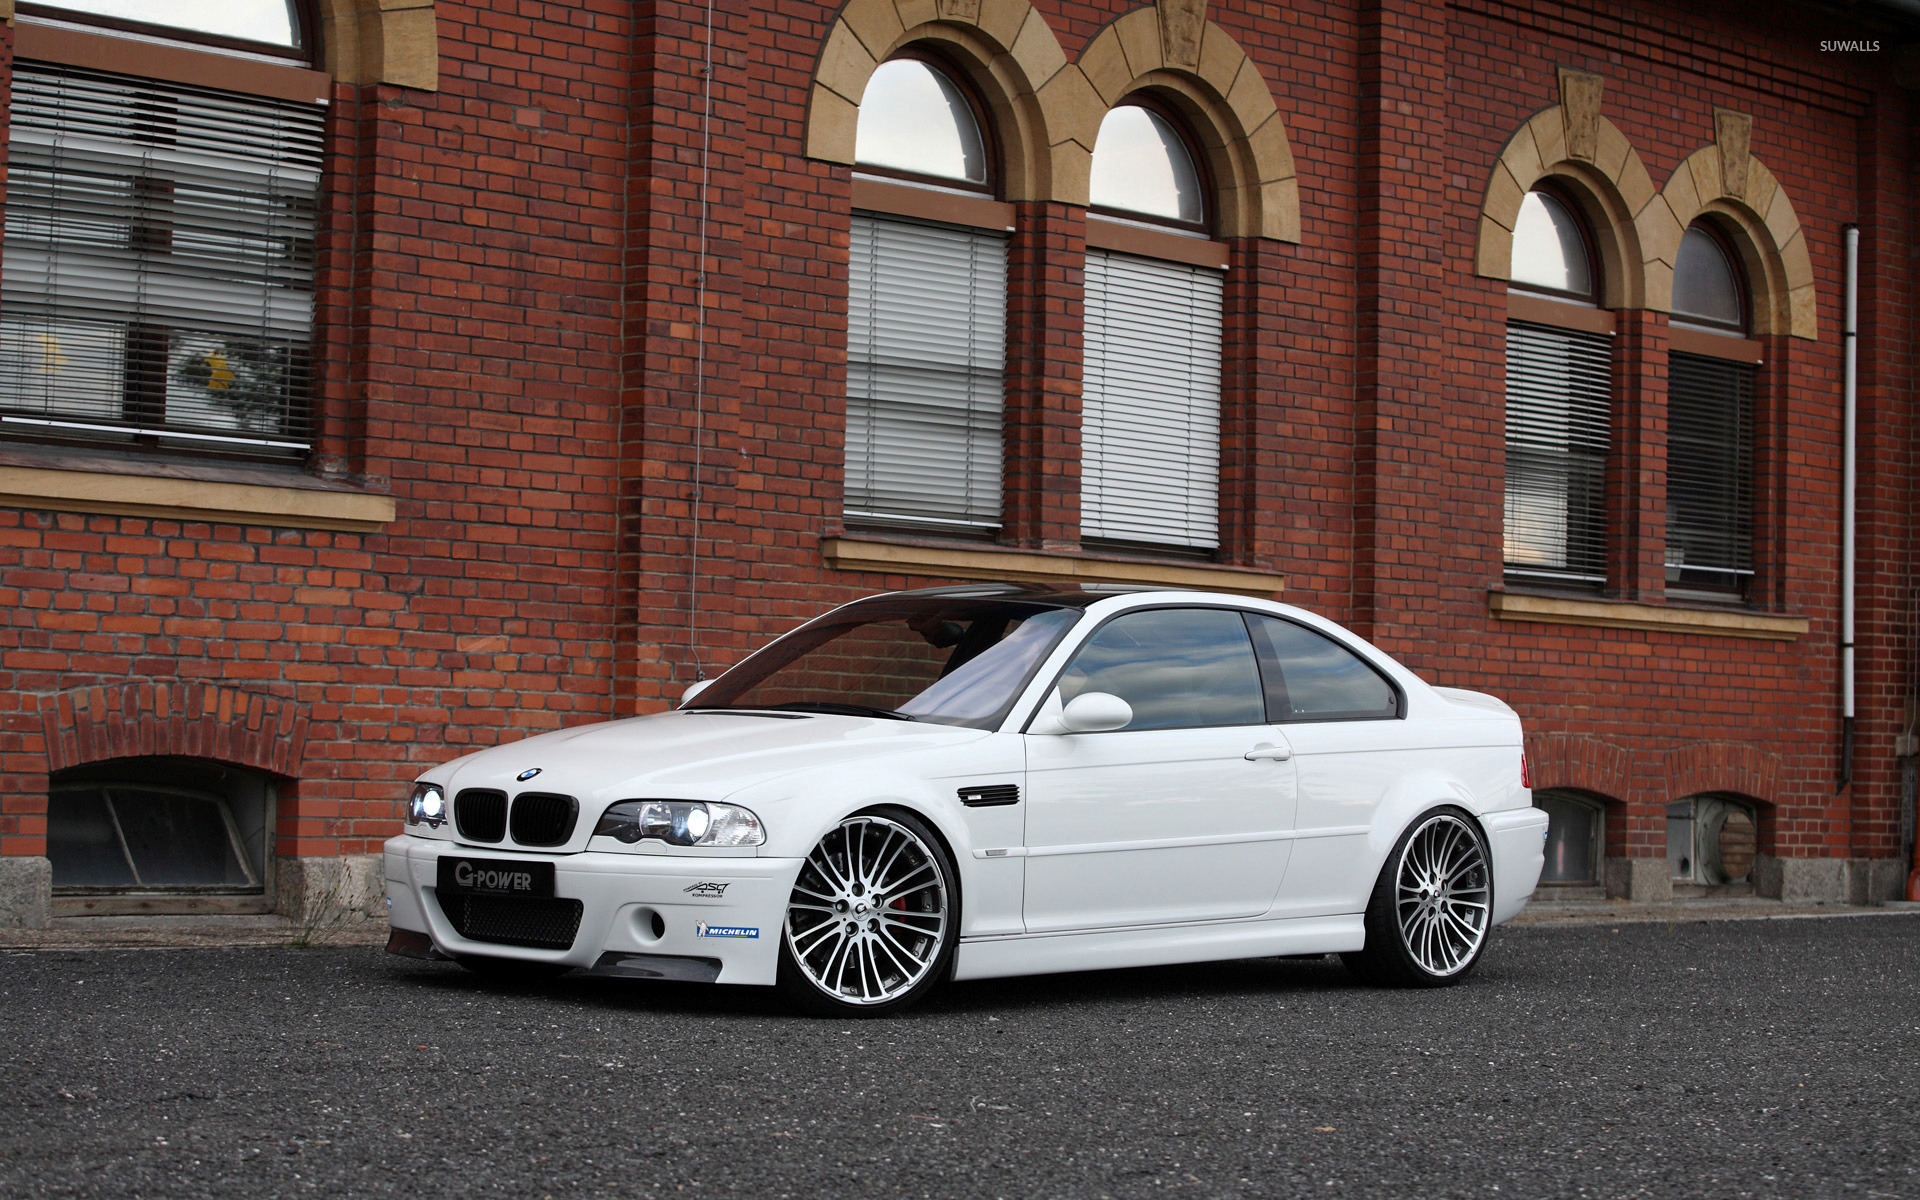 g power bmw m3 e46 wallpaper car wallpapers 12769. Black Bedroom Furniture Sets. Home Design Ideas